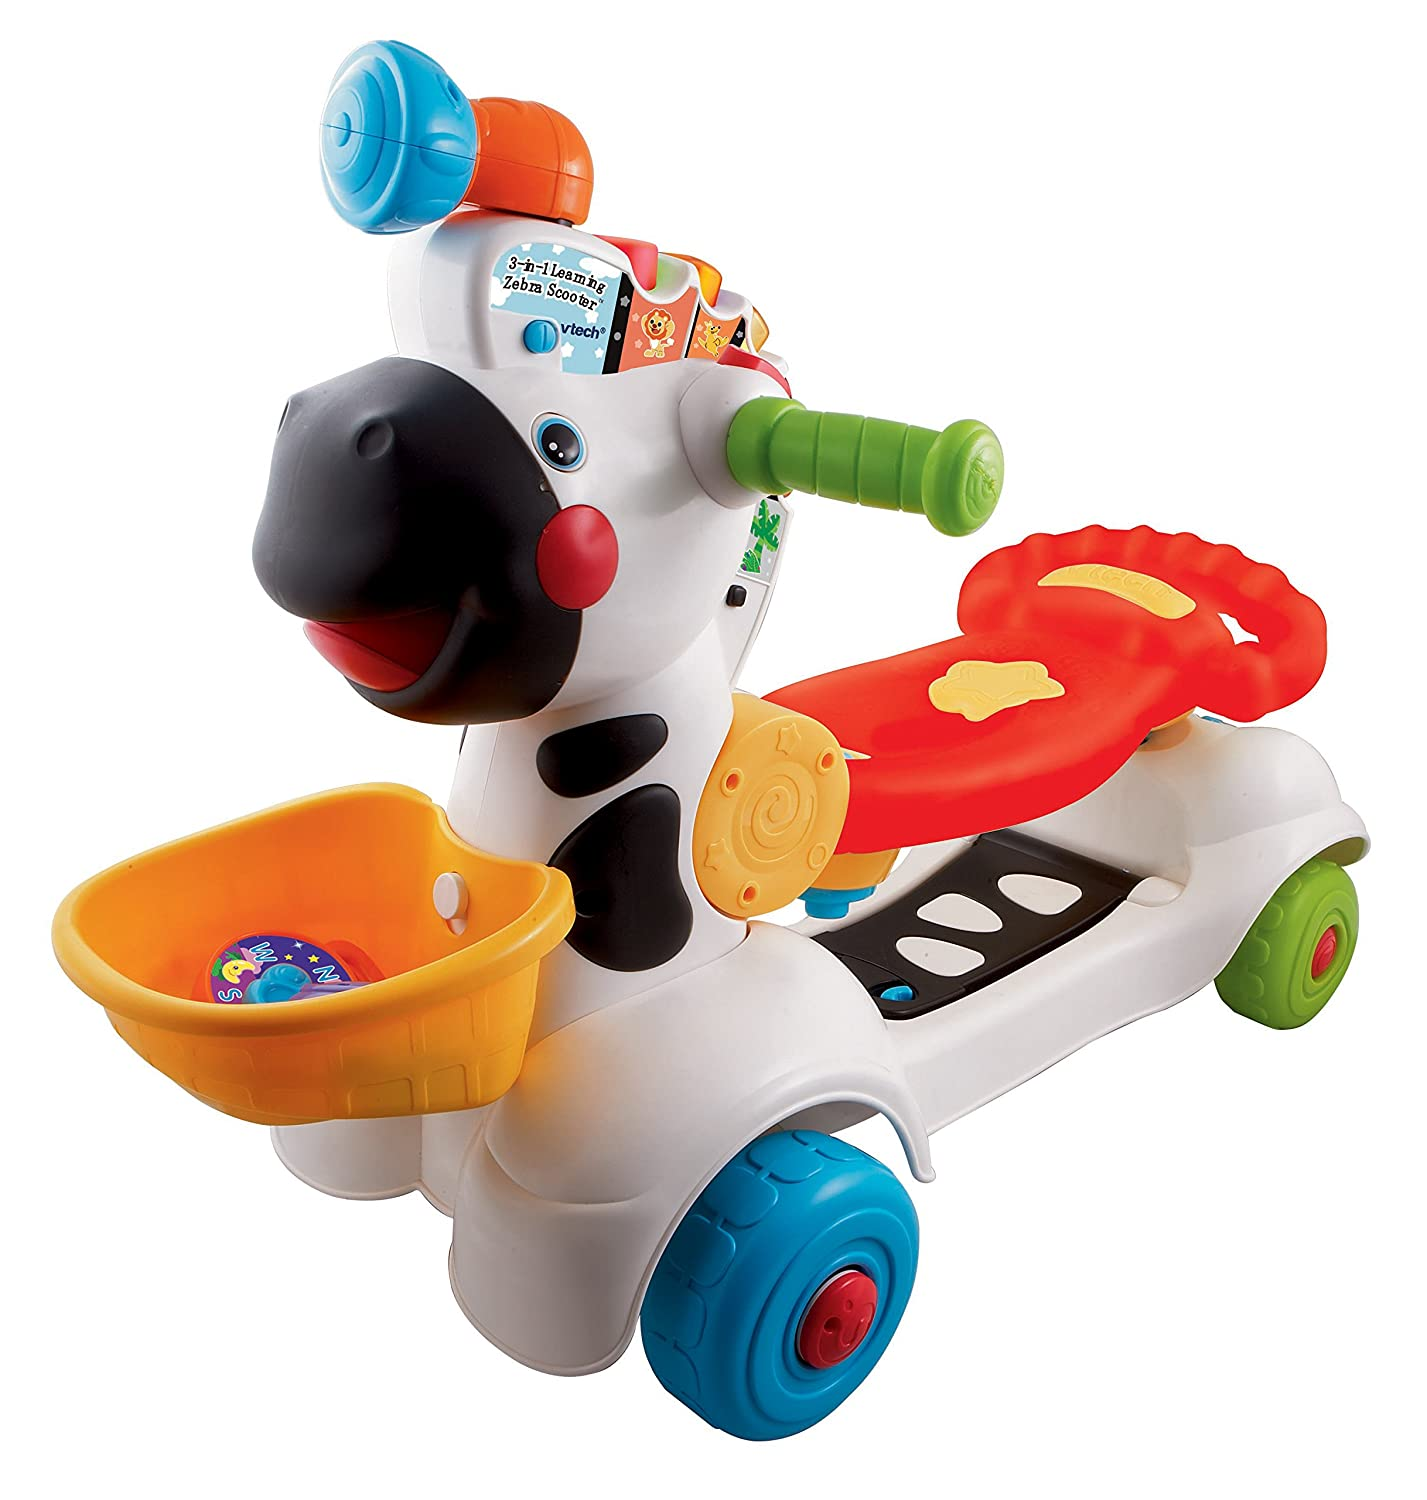 Amazon VTech 3 in 1 Learning Zebra Scooter Toys & Games